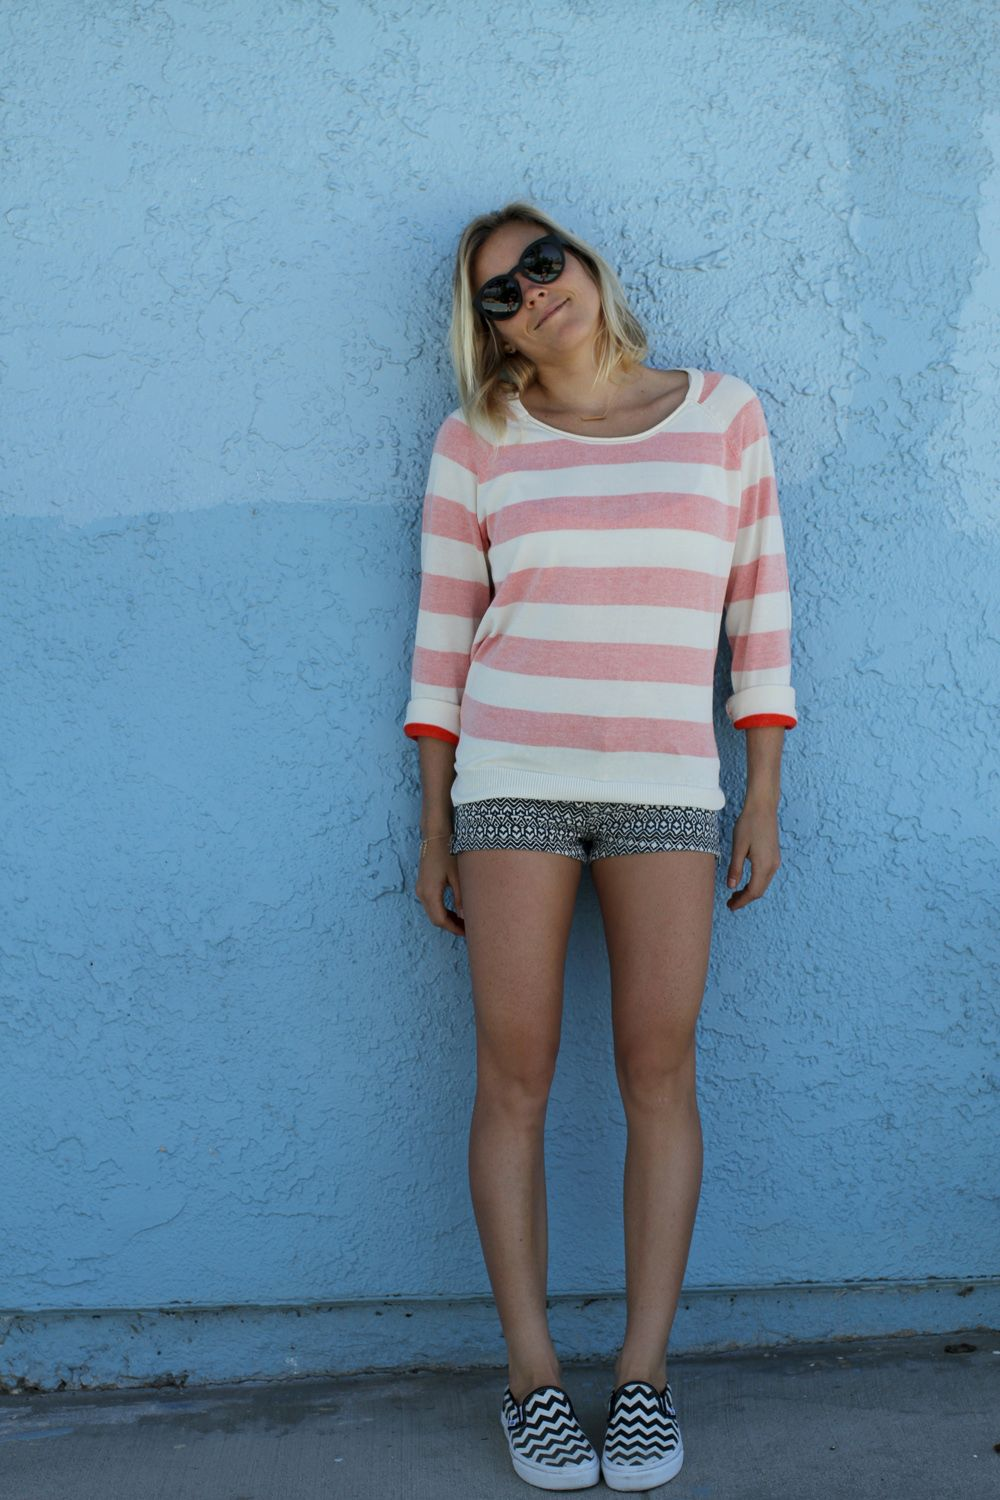 0d667d9702b90e Leila Hurst looking cute in head-to-toe Vans Girls footwear and apparel